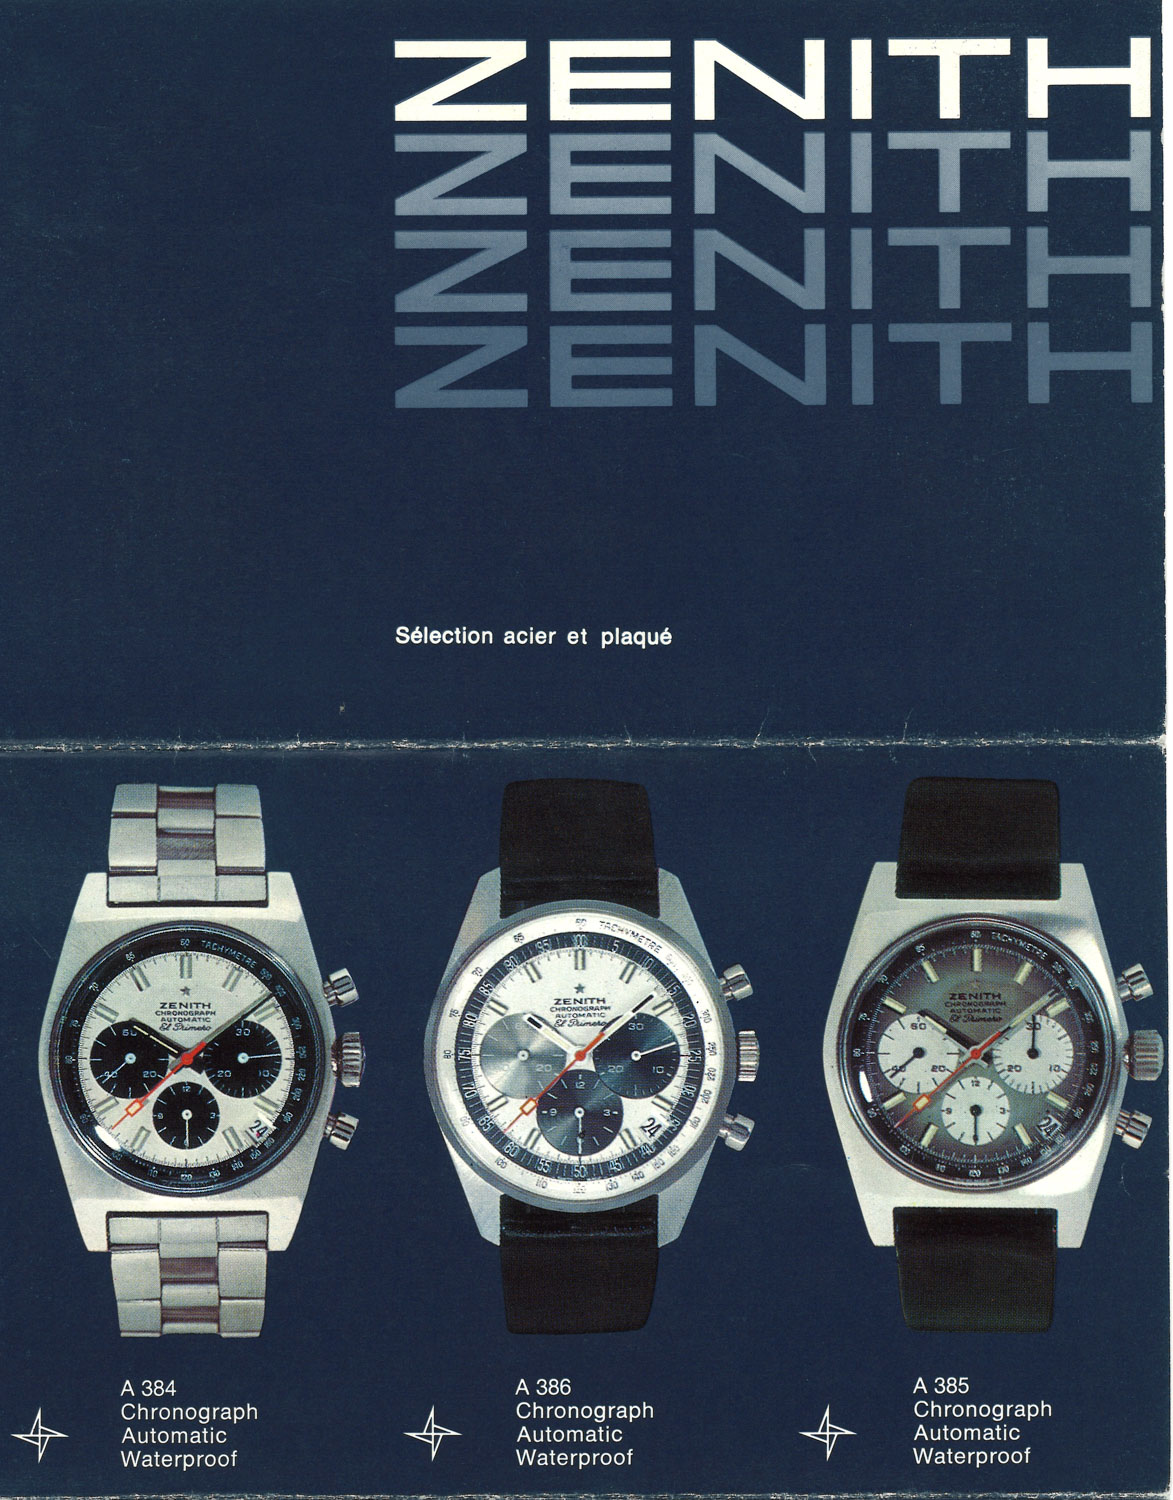 A 1969 Zenith advertisement showcasing the the three references that gave the El Primero its first foray into the world, including the A385 the first El Primero watch with a gradient dial